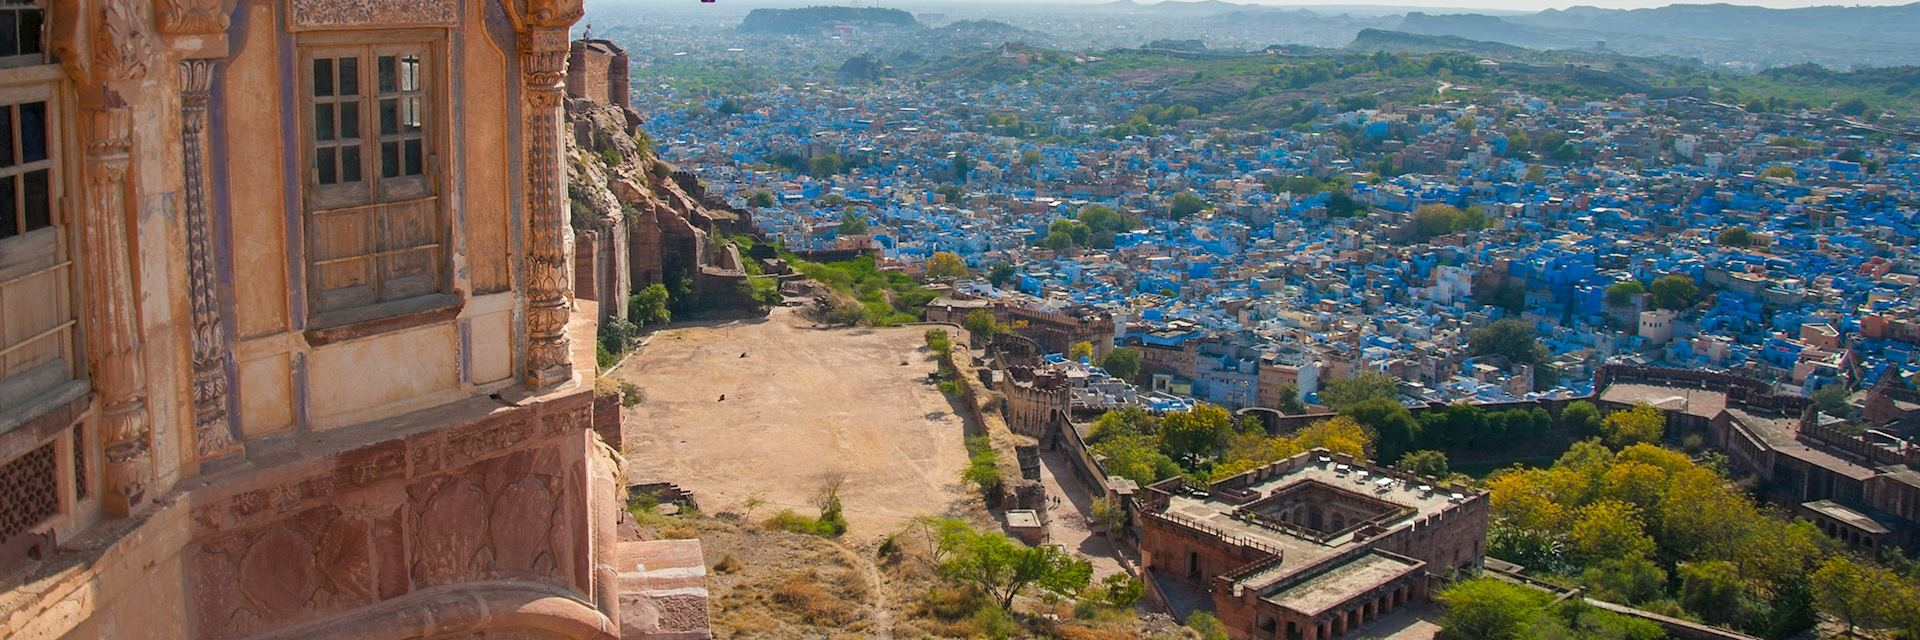 Jodhpur viewed from Mehrangarh Fort, India